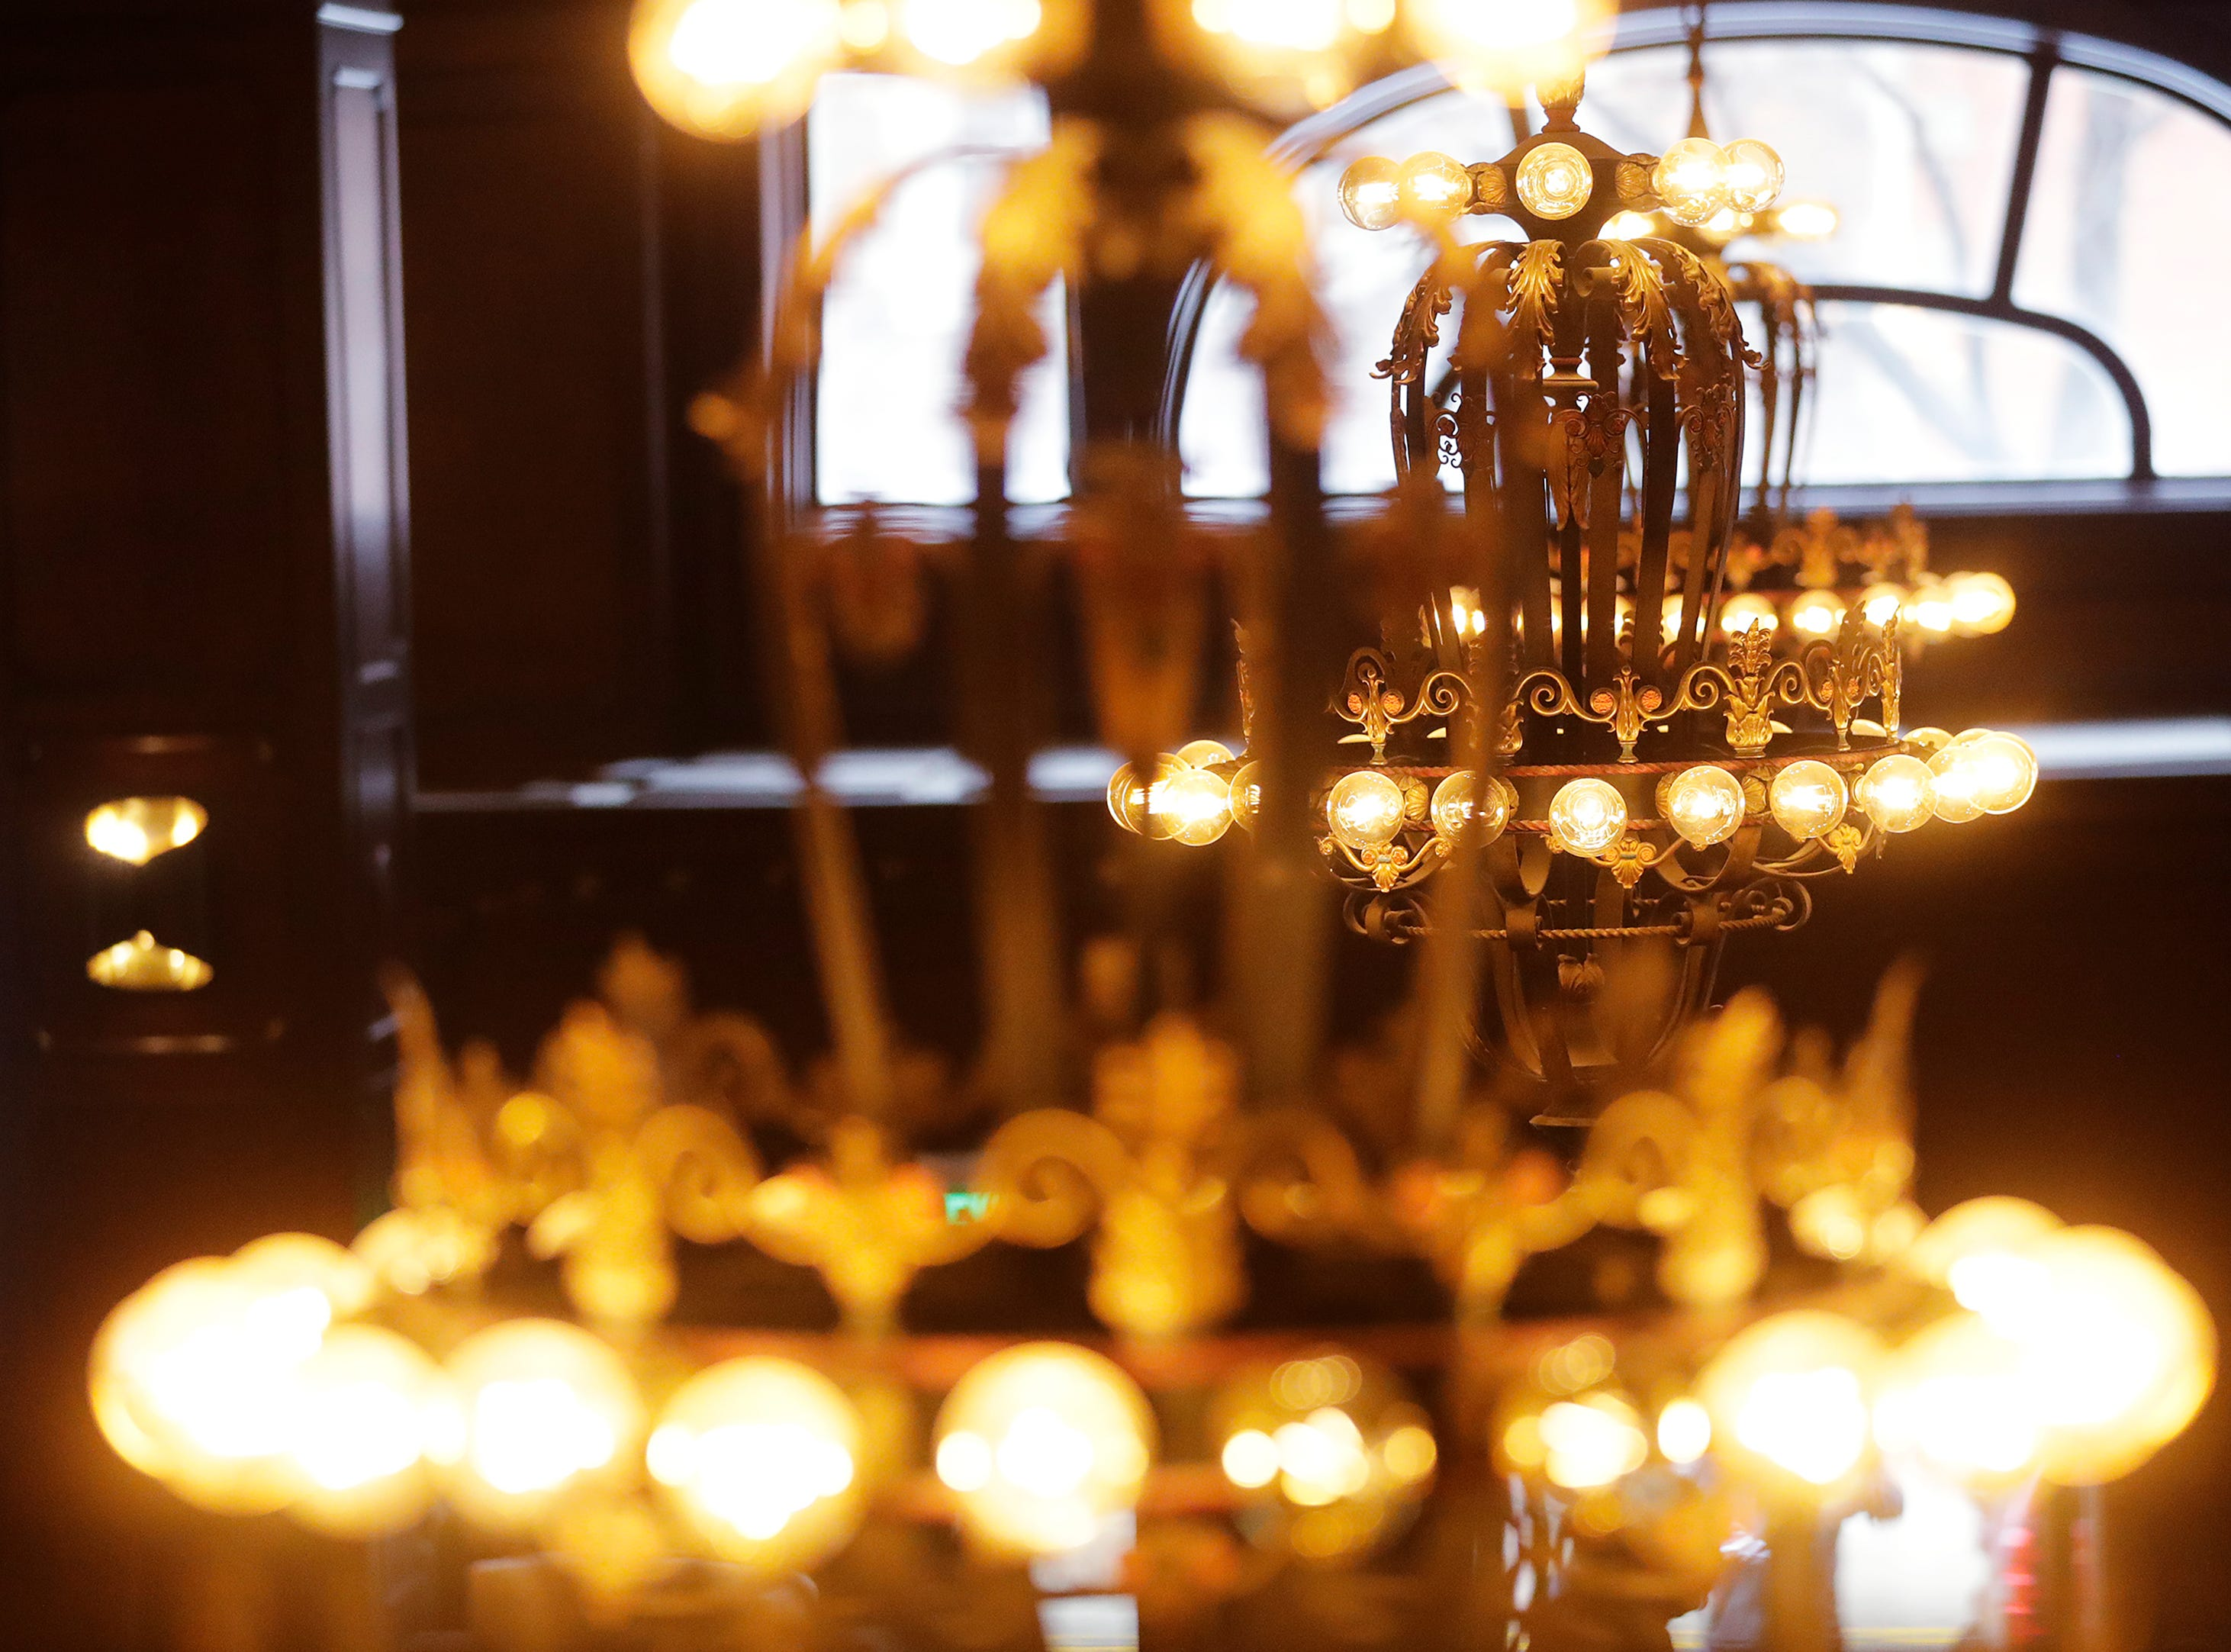 Chandeliers on the lobby of the Hotel Northland are shown on Thursday, February 14, 2019 in Green Bay, Wis.